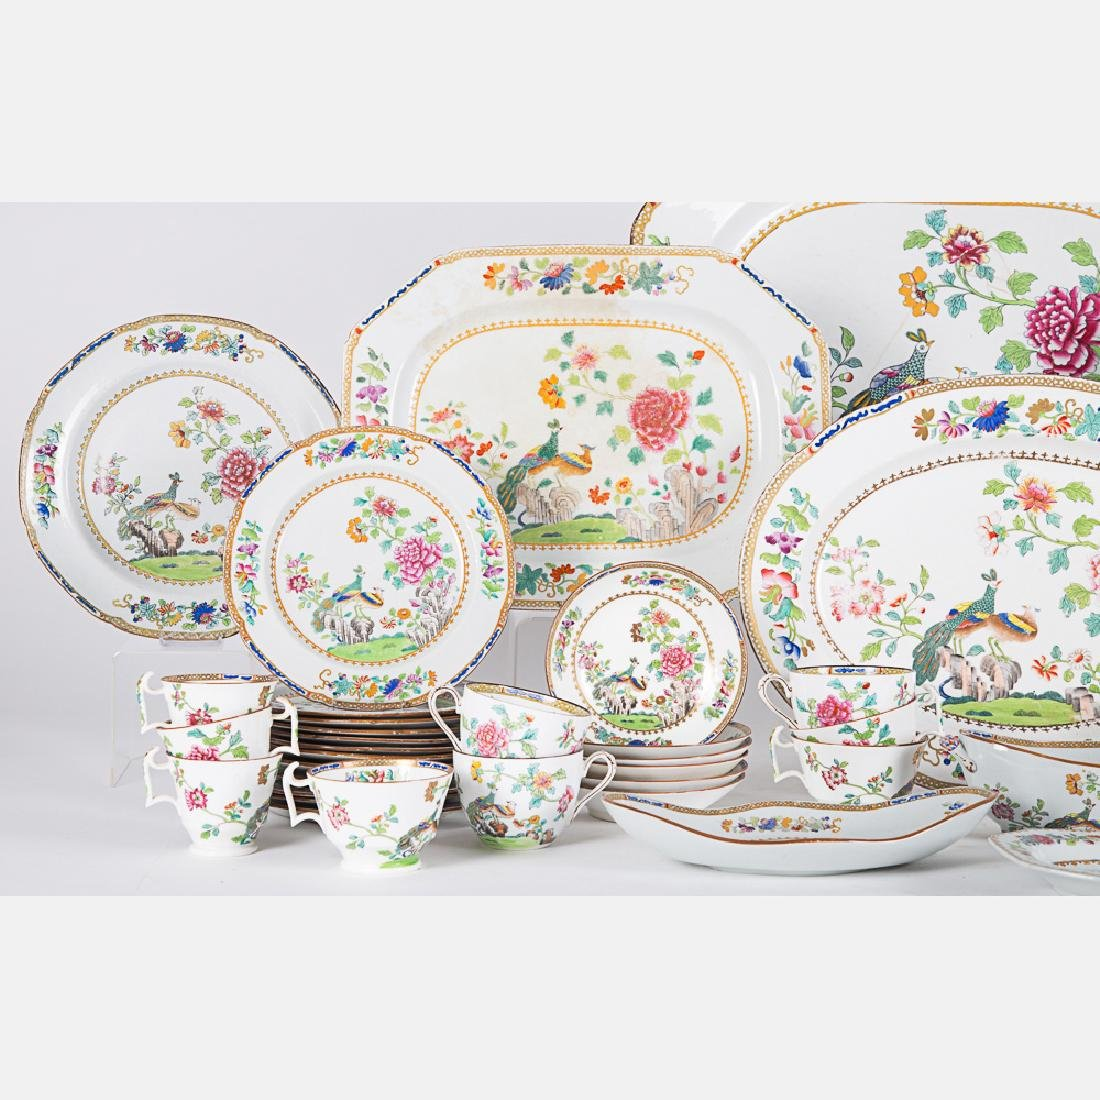 A Partial Spode Stoneware Luncheon Set in the Peacock - 3